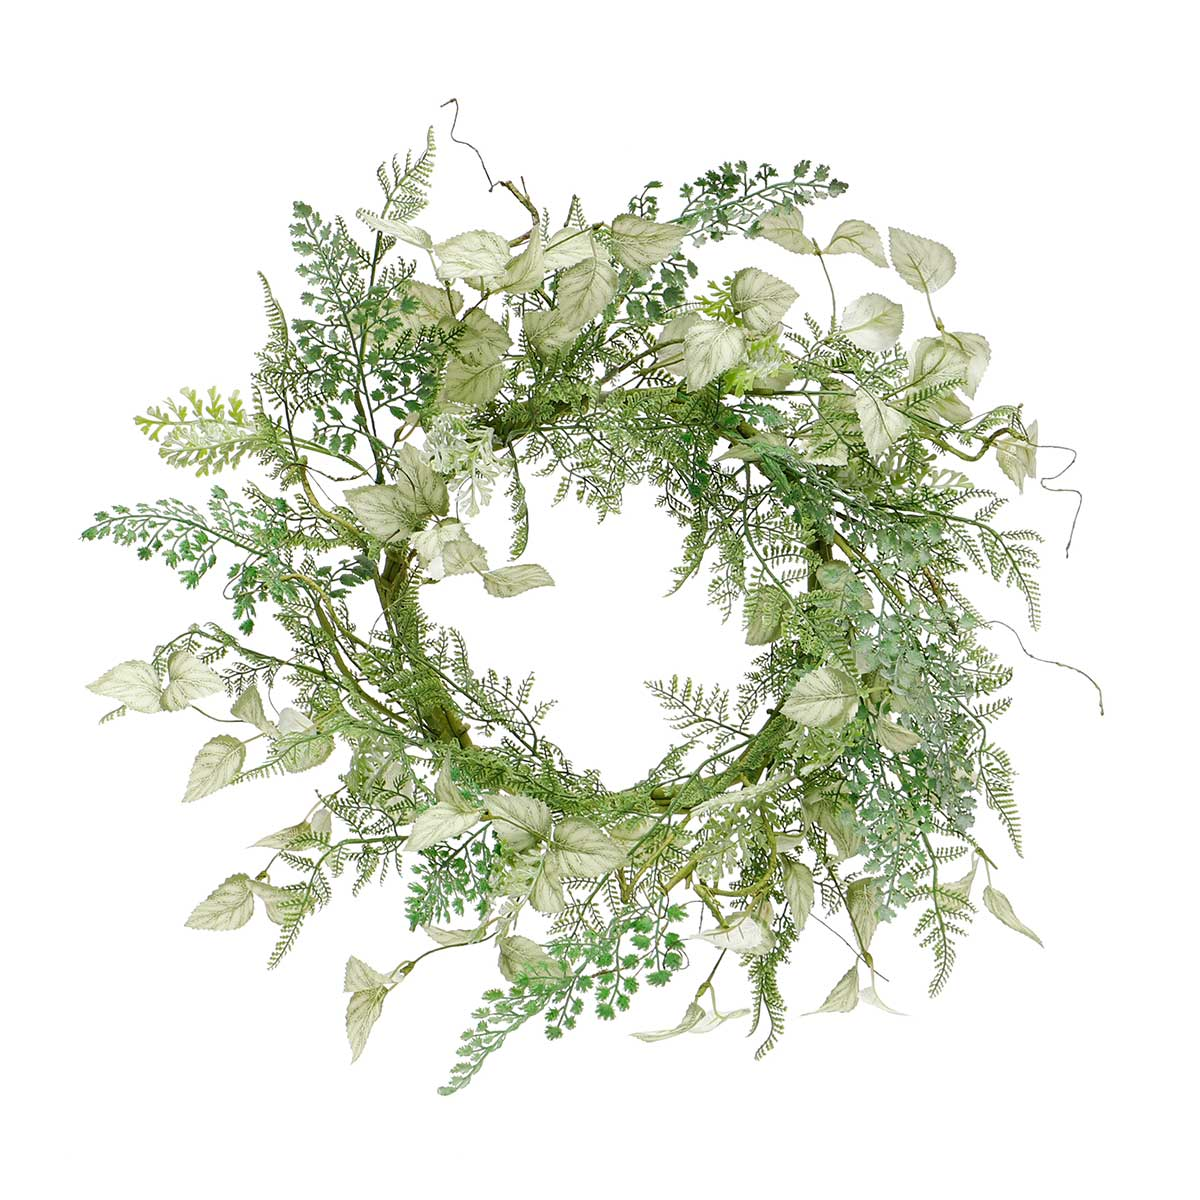 "LAUREL MIXED FOLIAGE WREATH 21.5"" (INNER RING 10"")"